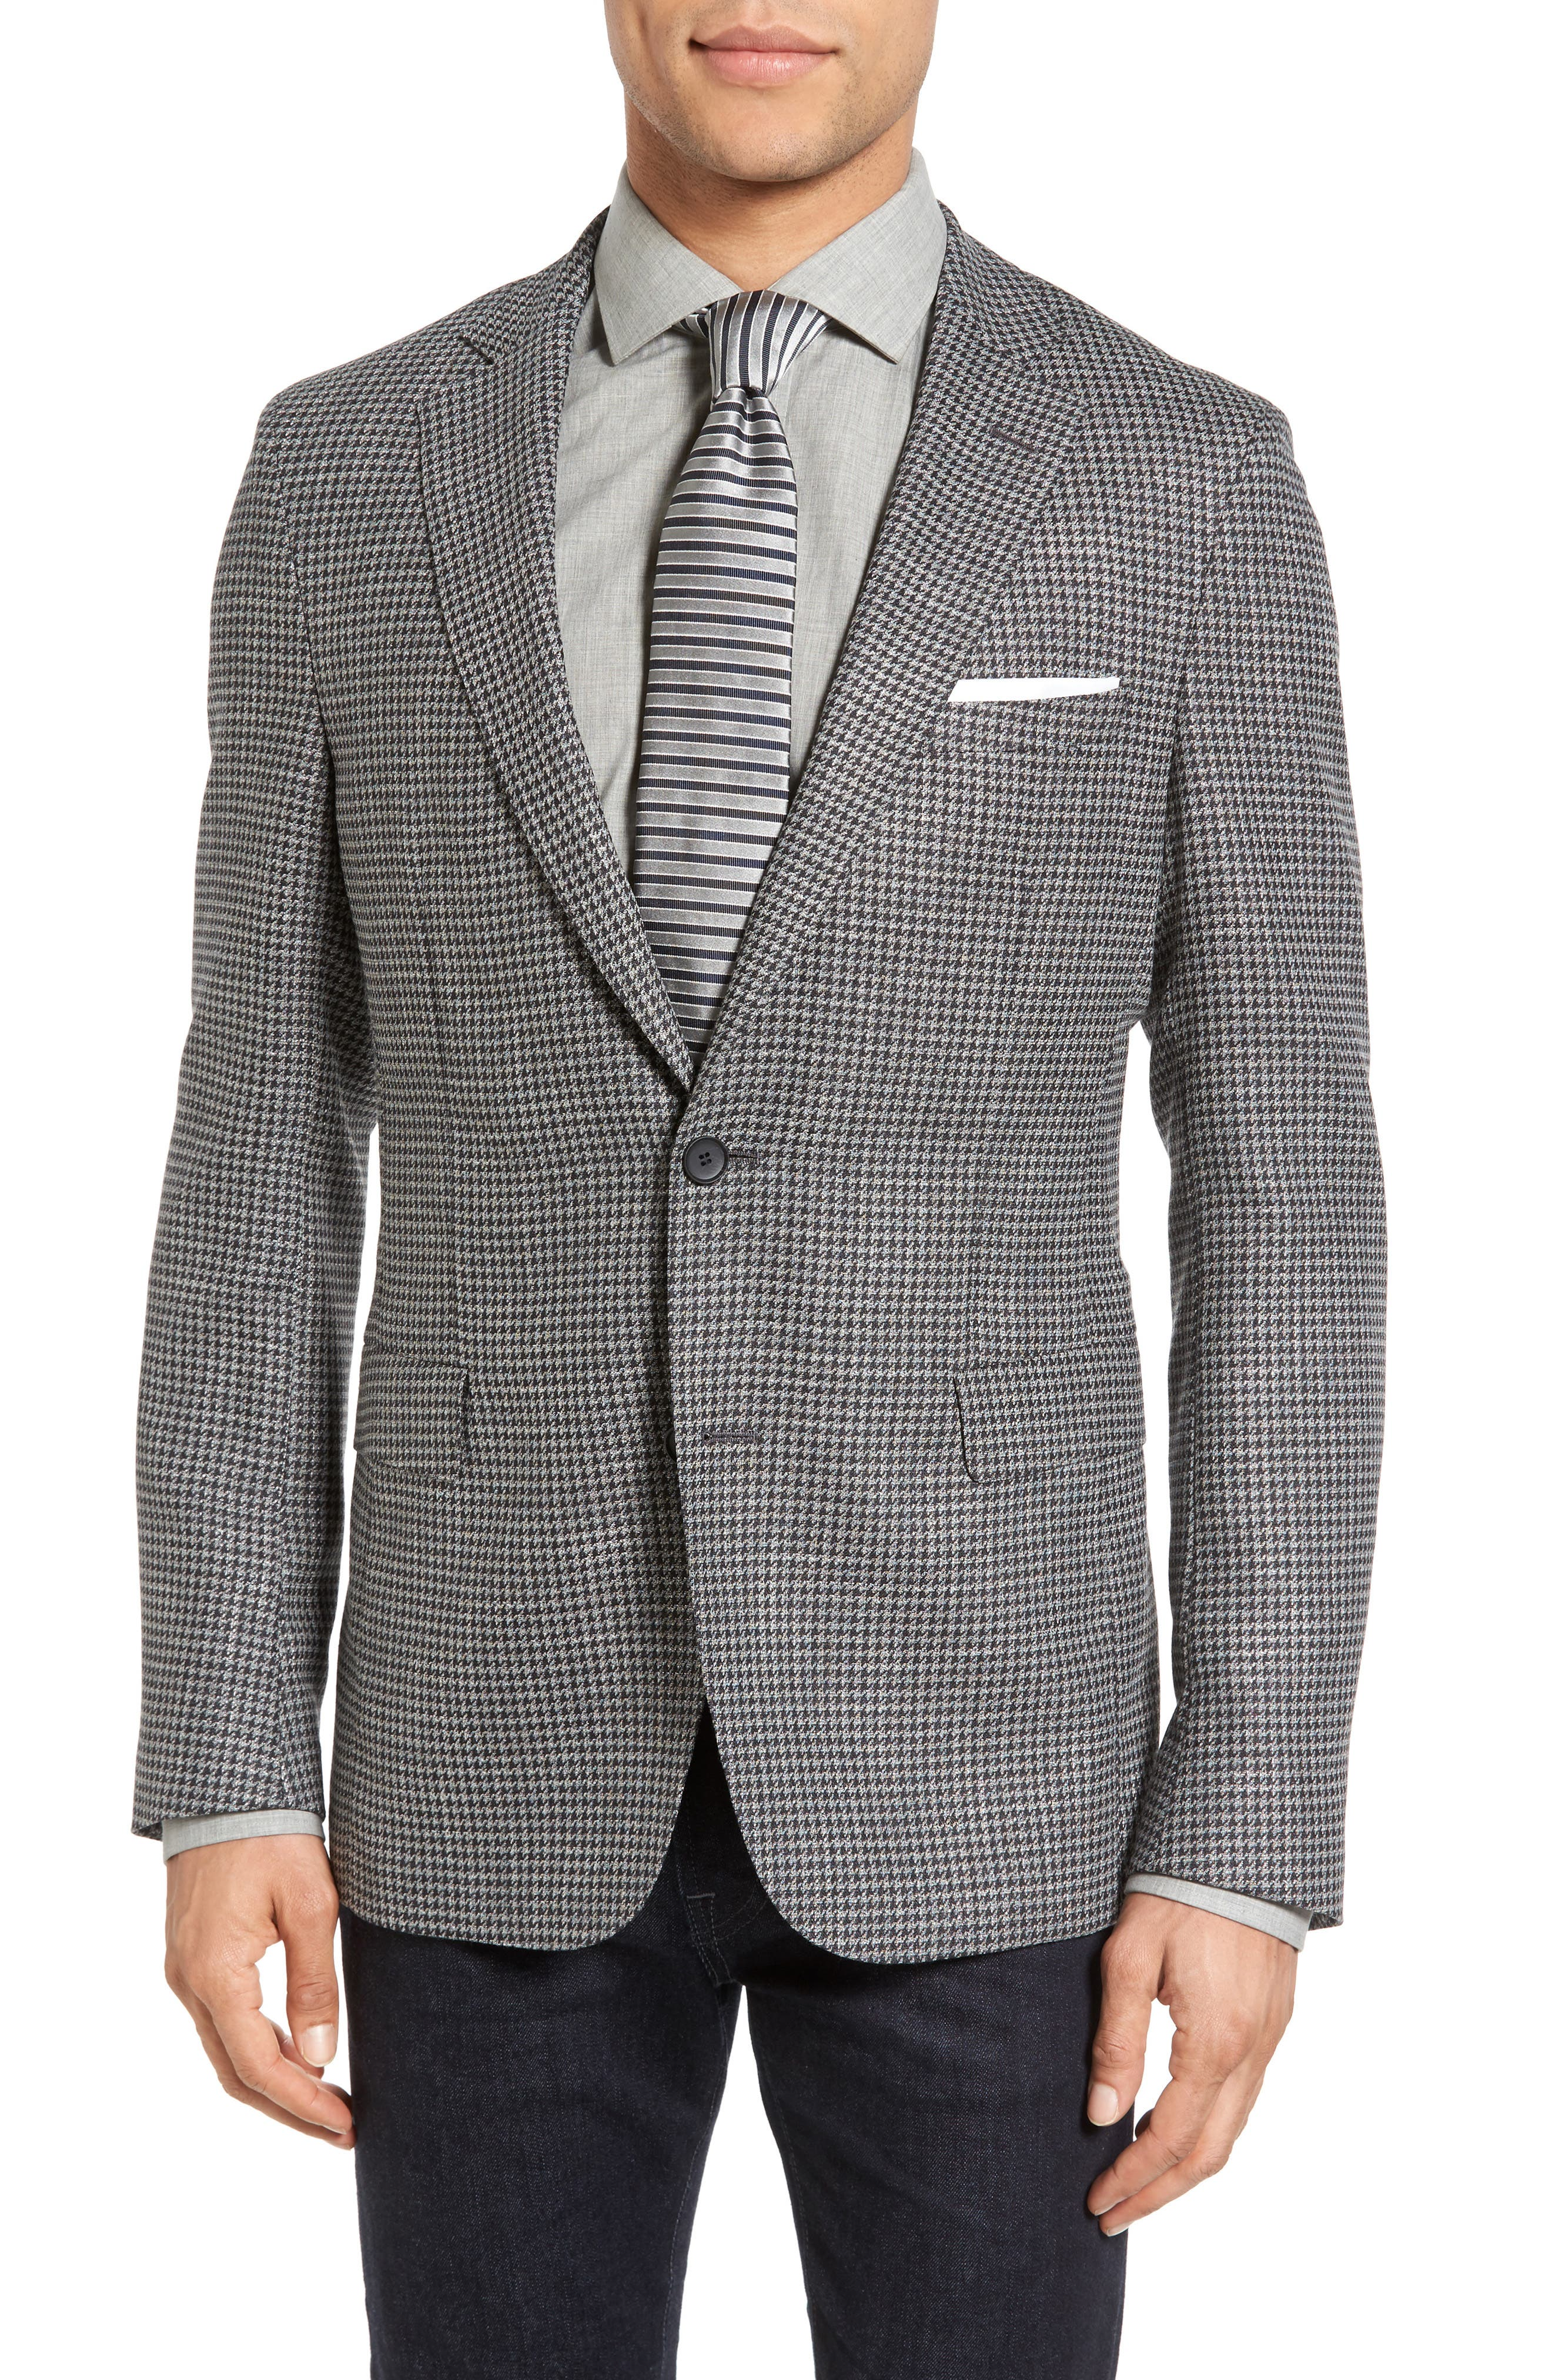 Main Image - BOSS Roan Trim Fit Houndstooth Wool Blend Sport Coat